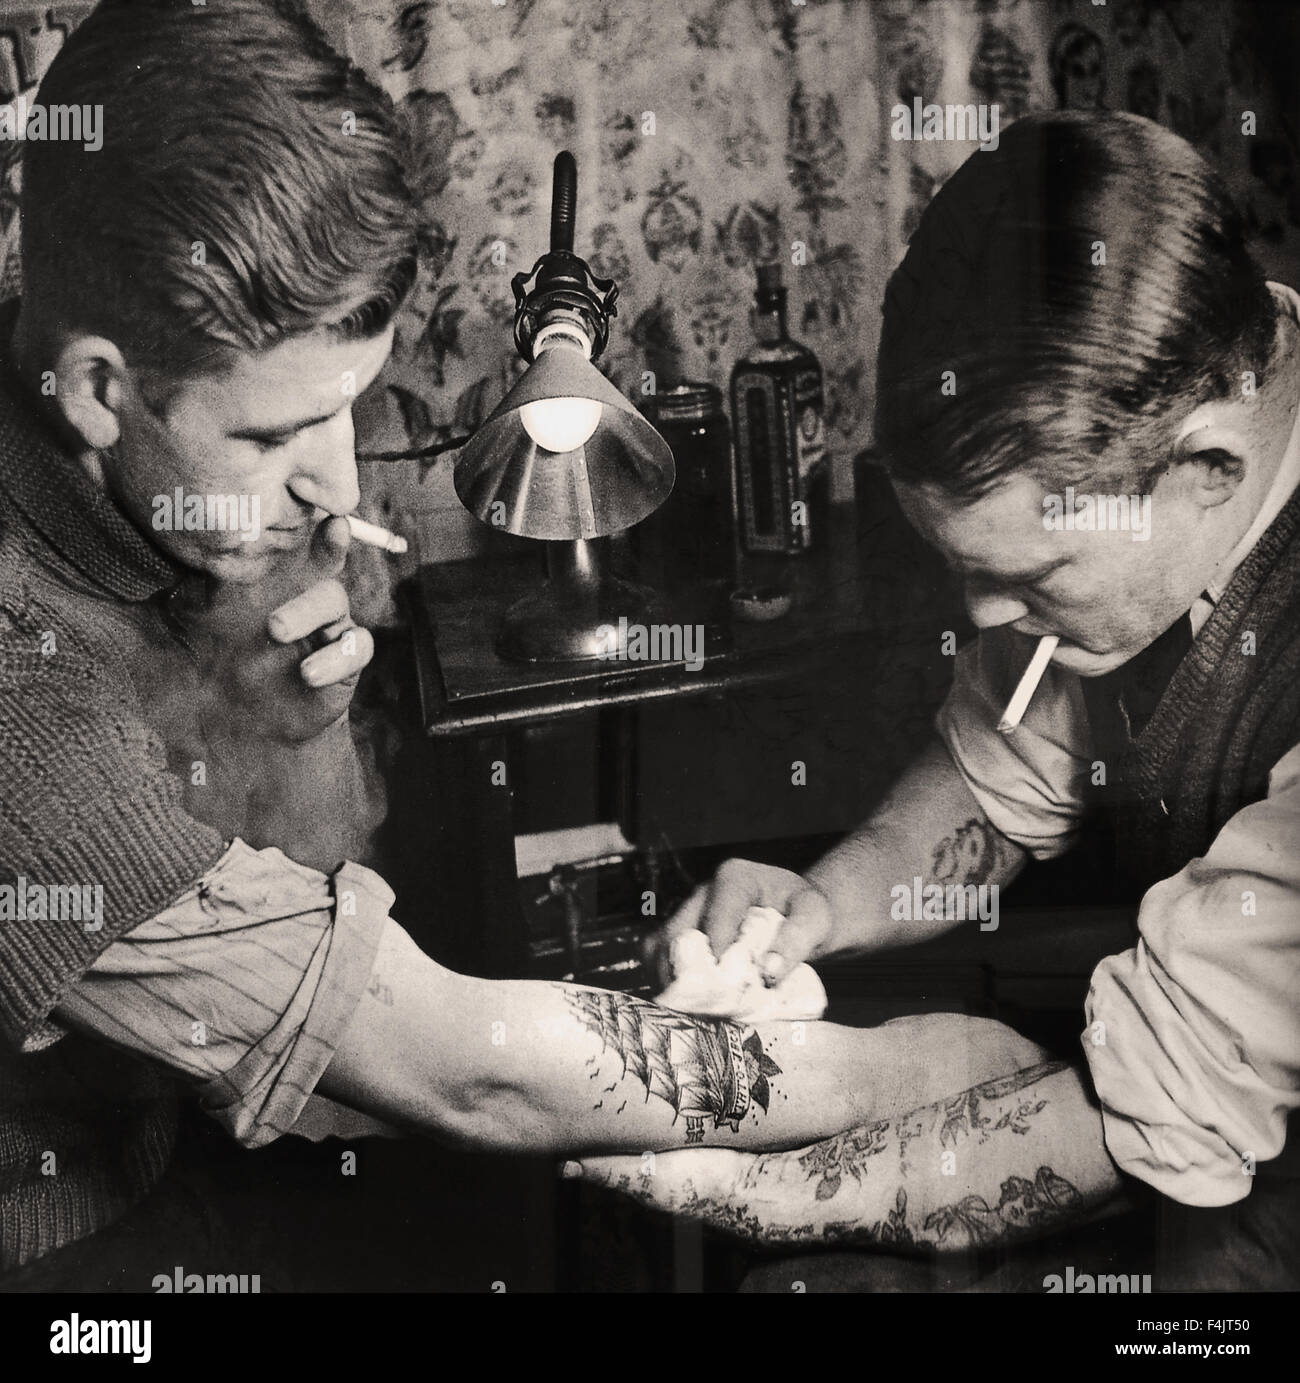 Sailor In A Tattoo Shop In The Year 1950 Amsterdam